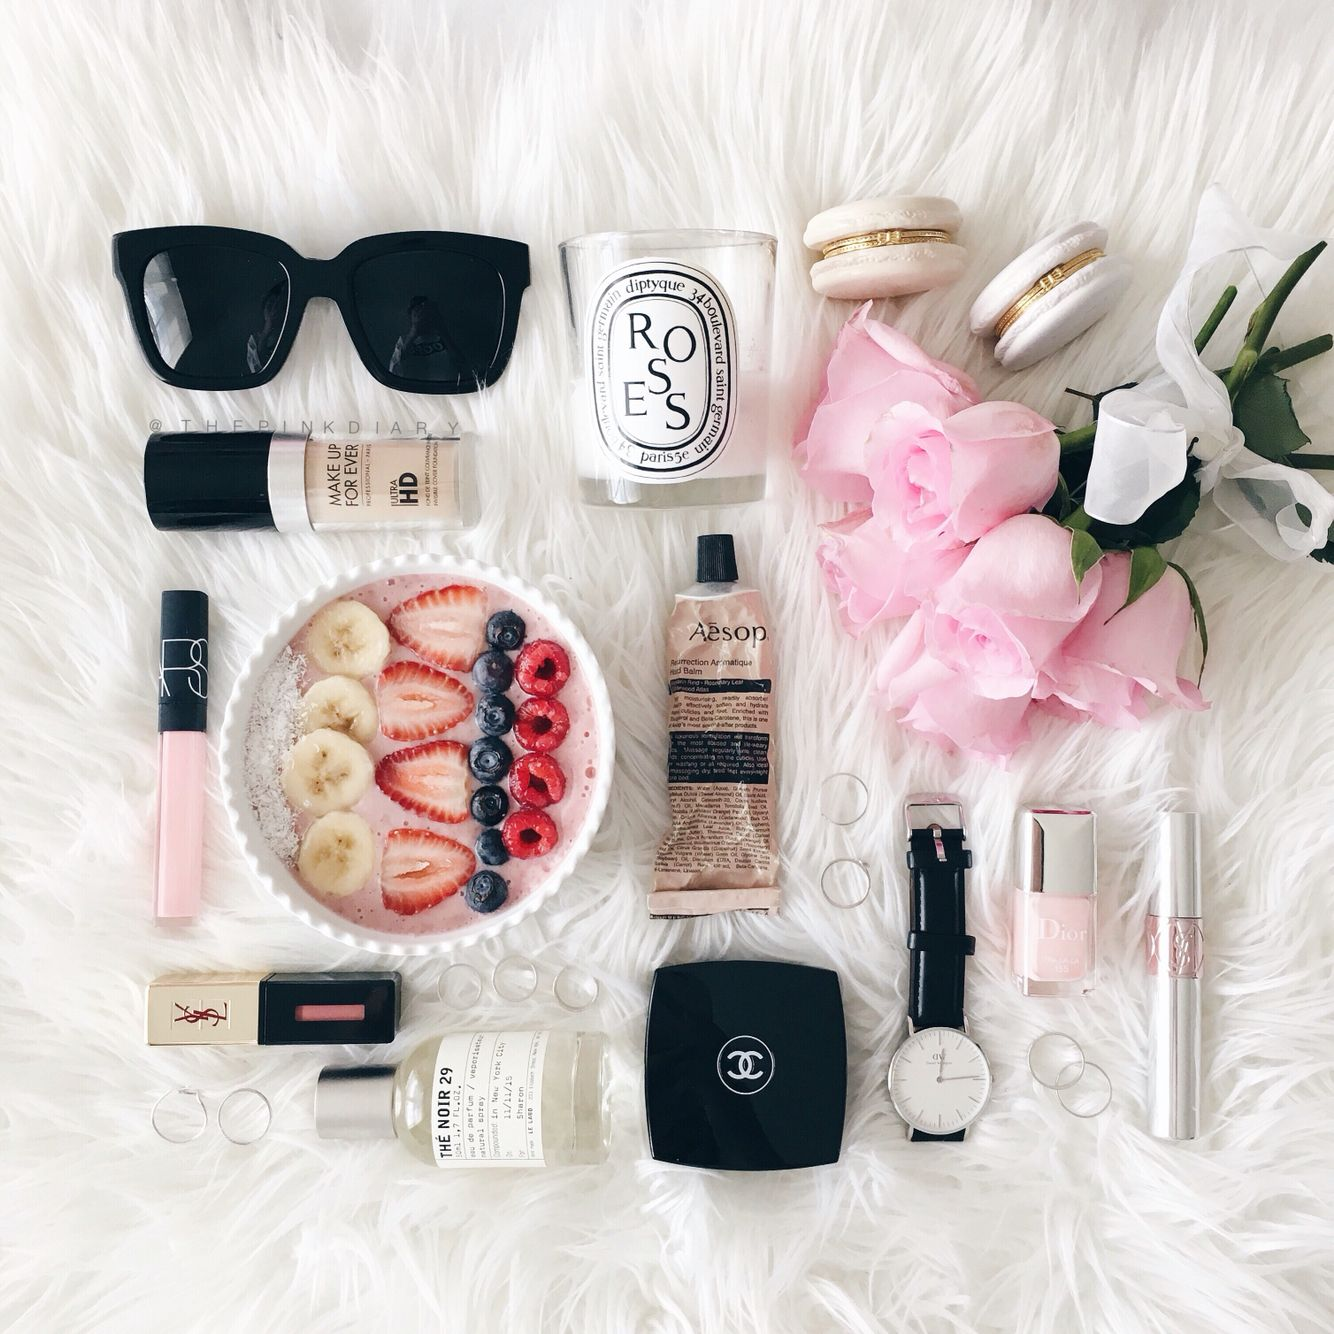 Aasop always pink   flatlay styling, flat lay photography, just